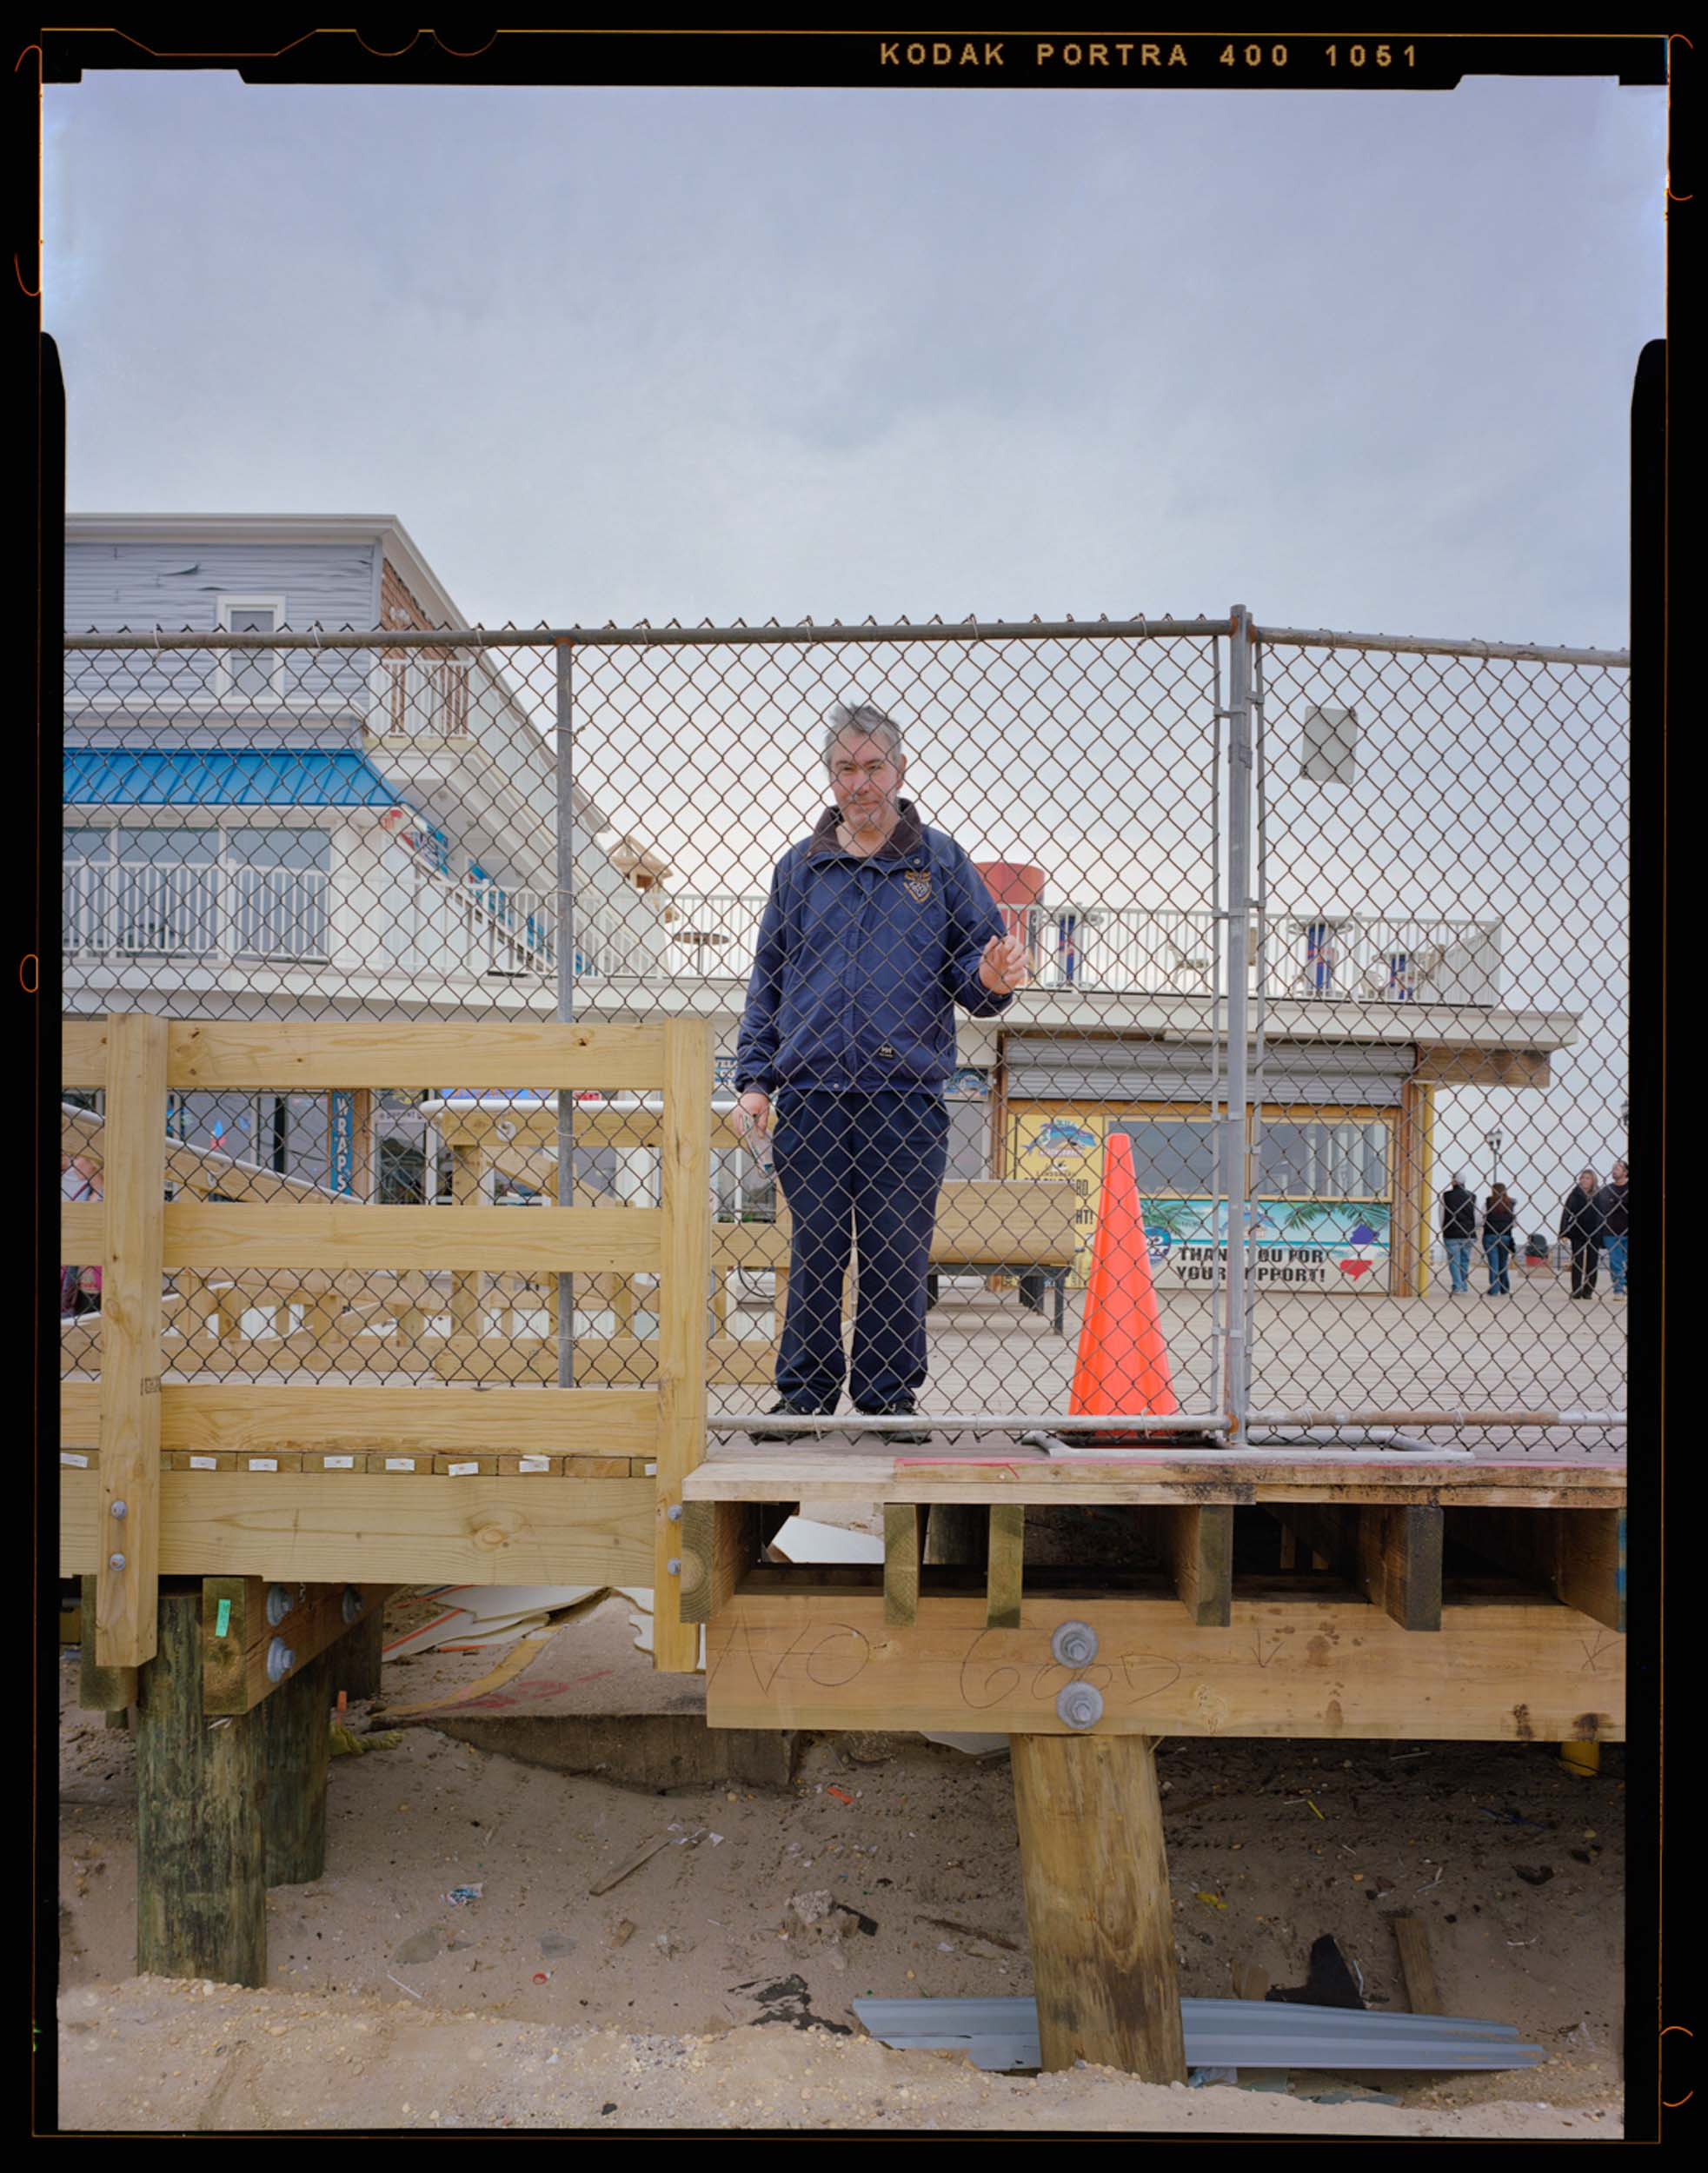 Barry, Seaside, NJ. 2014. 4x5 Shen-Hao,    A Seaside native, Barry, has been a center point in my documentation of Seaside. Barry was the guy to know in Seaside, as he knew everyone and everything about the boardwalk. As soon as I connected with Barry, people took notice and became more comfortable with my project. Being so invested in the boardwalk, Barry quickly took interested in my project and helped me as much as he could. During one of our conversations, Barry mentioned his mom always wanted a photograph of him on his second home, the boardwalk. Without hesitation, I asked if I could take his picture. Barry asked me what he should do in the photo, and I told him to just be himself. He grabbed a hold of the fence while I was framing the picture under the dark cloth and it was just perfect. When I returned the next month I printed his mother this photo.